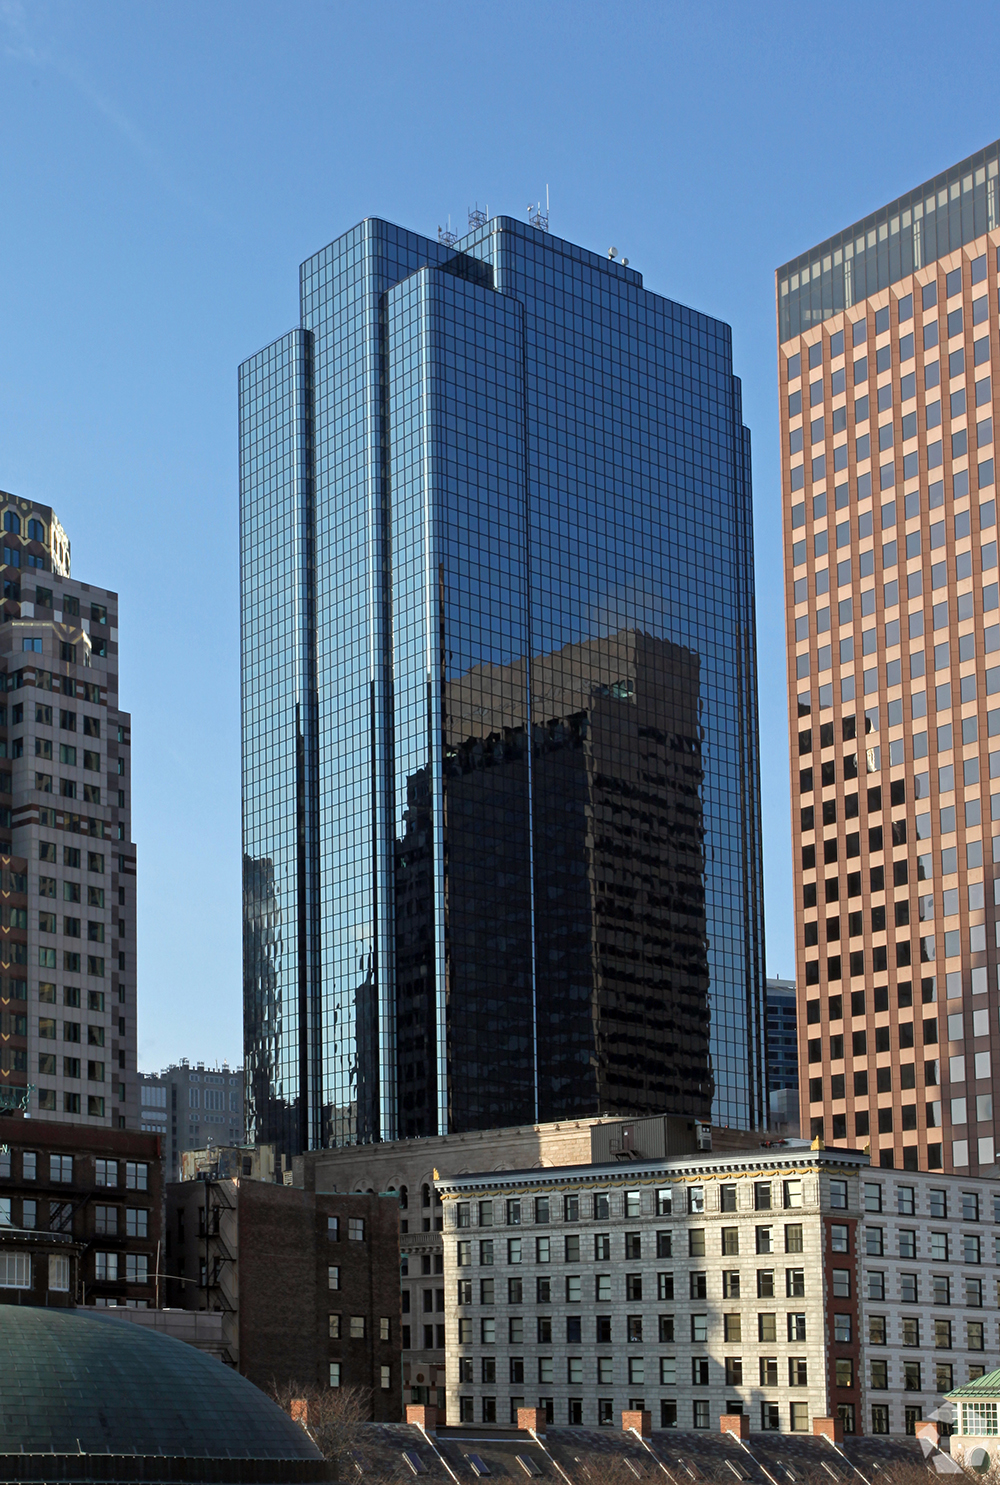 View detailed information and reviews for 28 State St in Boston, Massachusetts and get driving directions with road conditions and live traffic updates along the way.